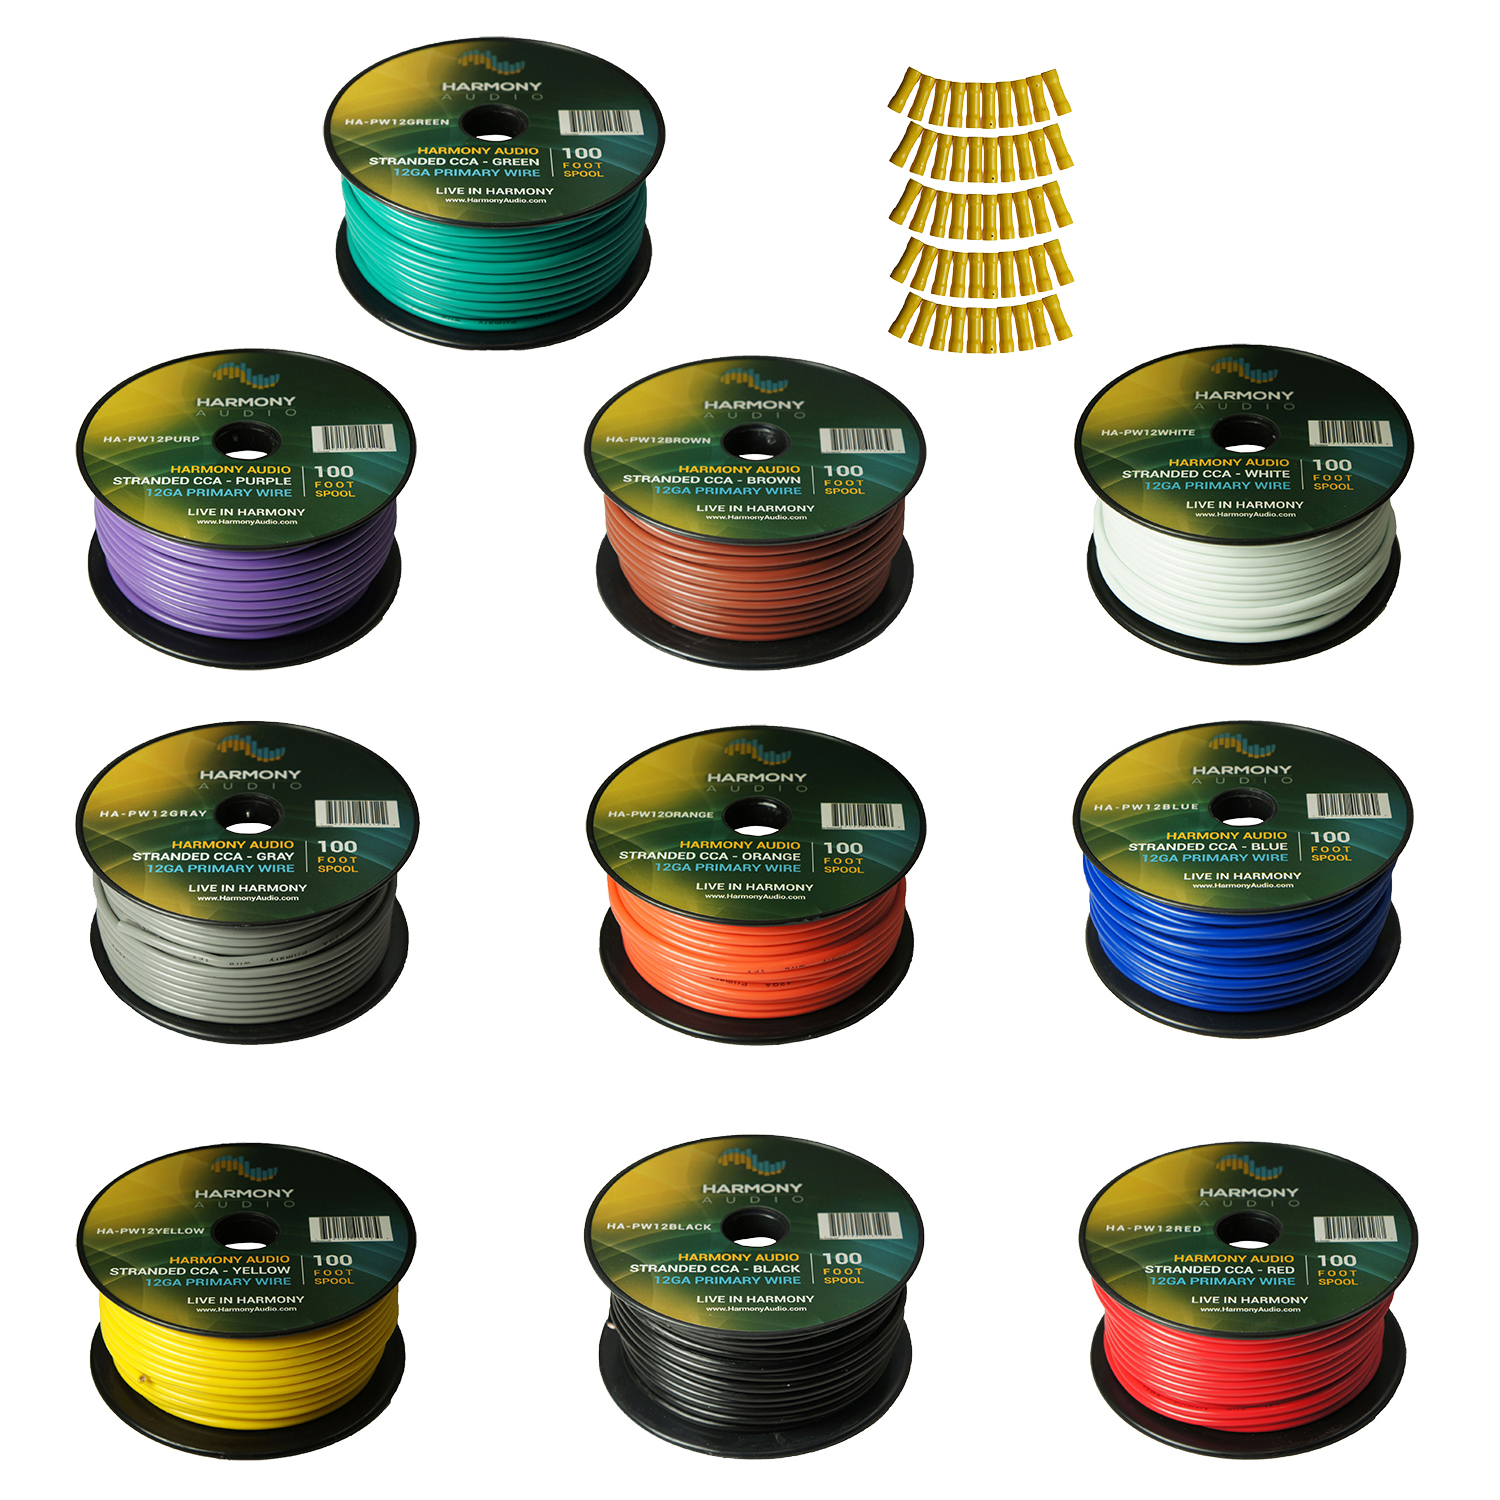 Harmony Audio Primary Single Conductor 12 Gauge Power or Ground Wire - 10 Rolls - 1000 Feet - Color Mix for Car Audio / Trailer / Model Train / Remote